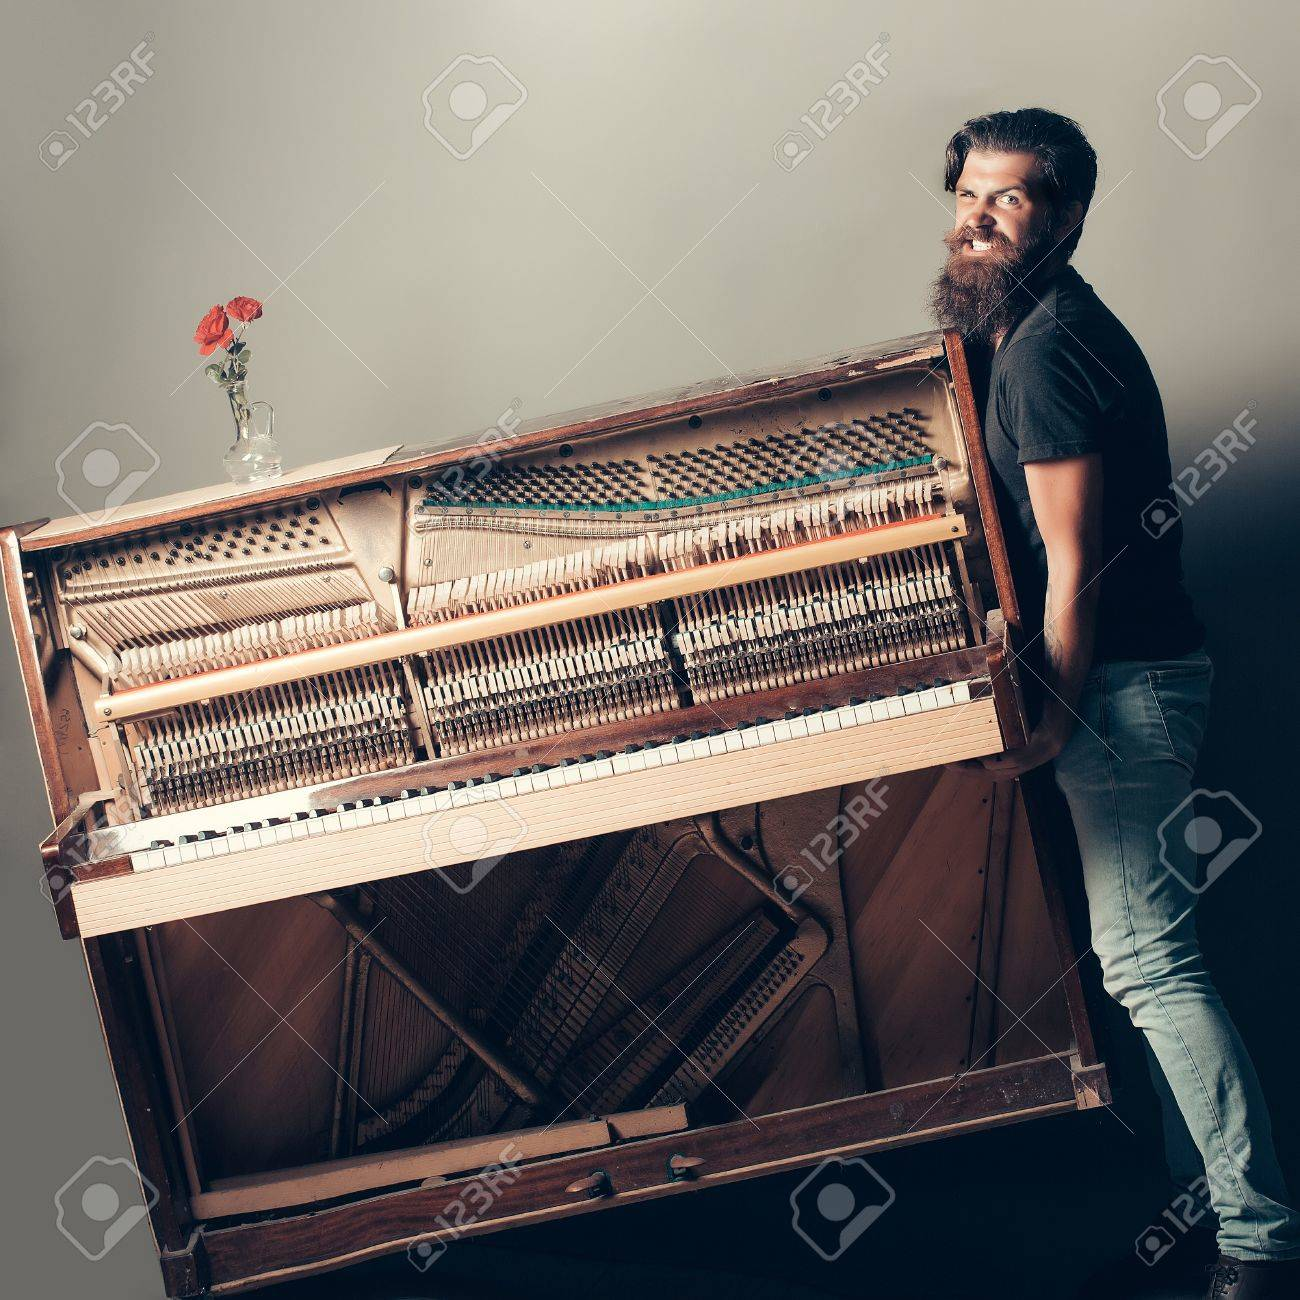 handsome bearded strong man with stylish hair mustache and beard trying to move old wooden or wood open piano with keyboard and glass vase with red rose flowers on grey background, copy space - 63549403